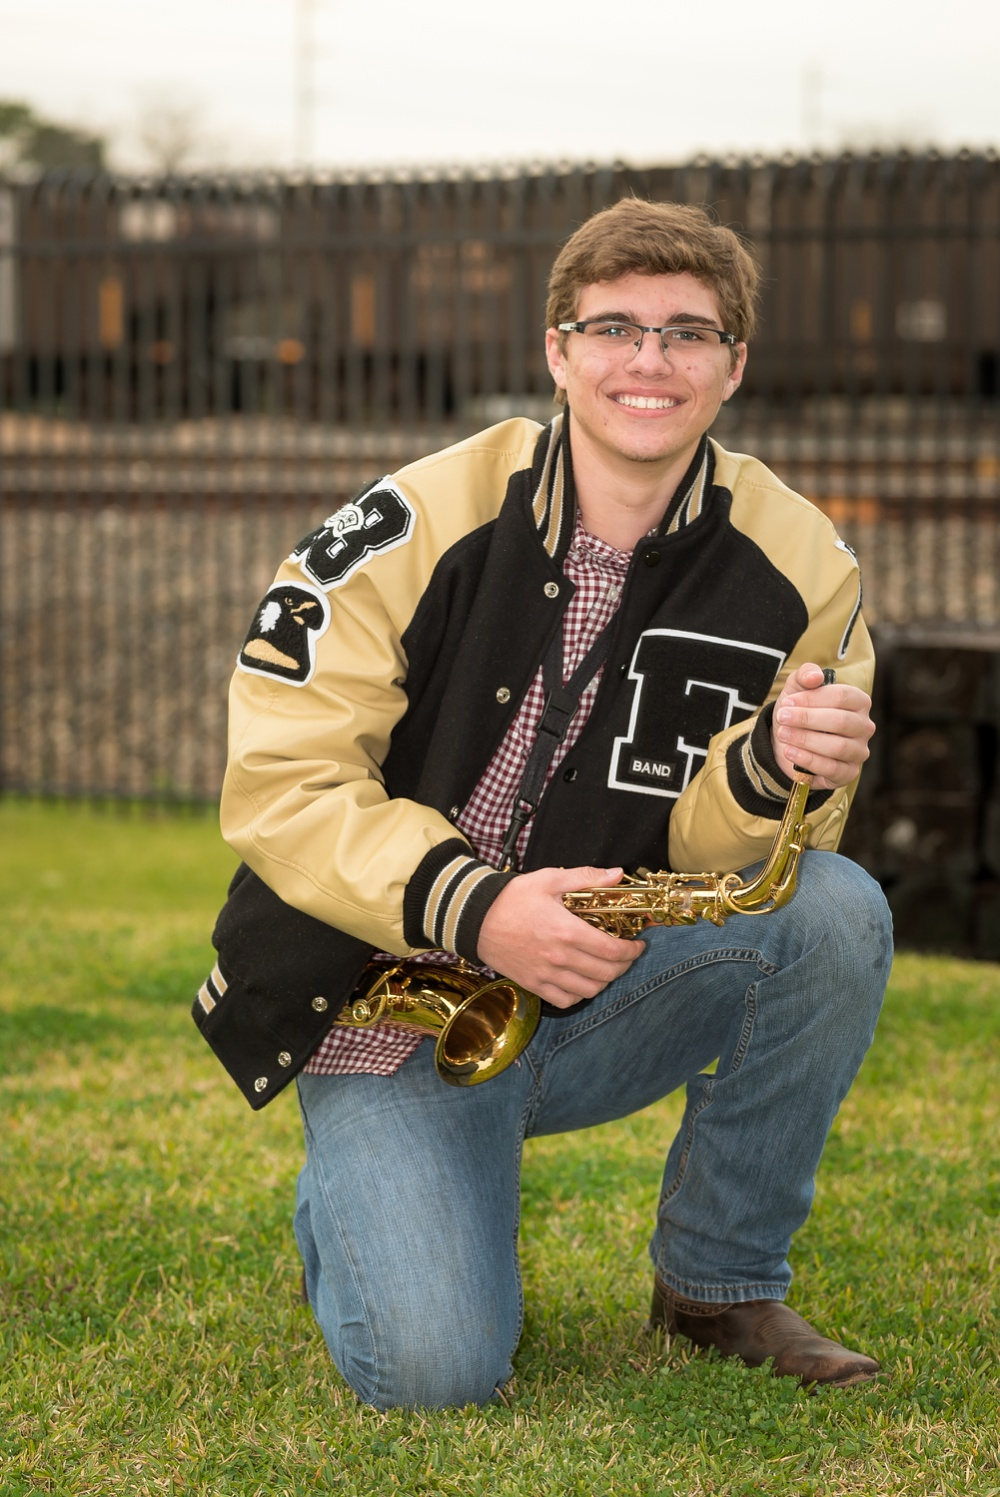 Creations by Jewel_saxophone_senior photos_Foster High School band.jpg